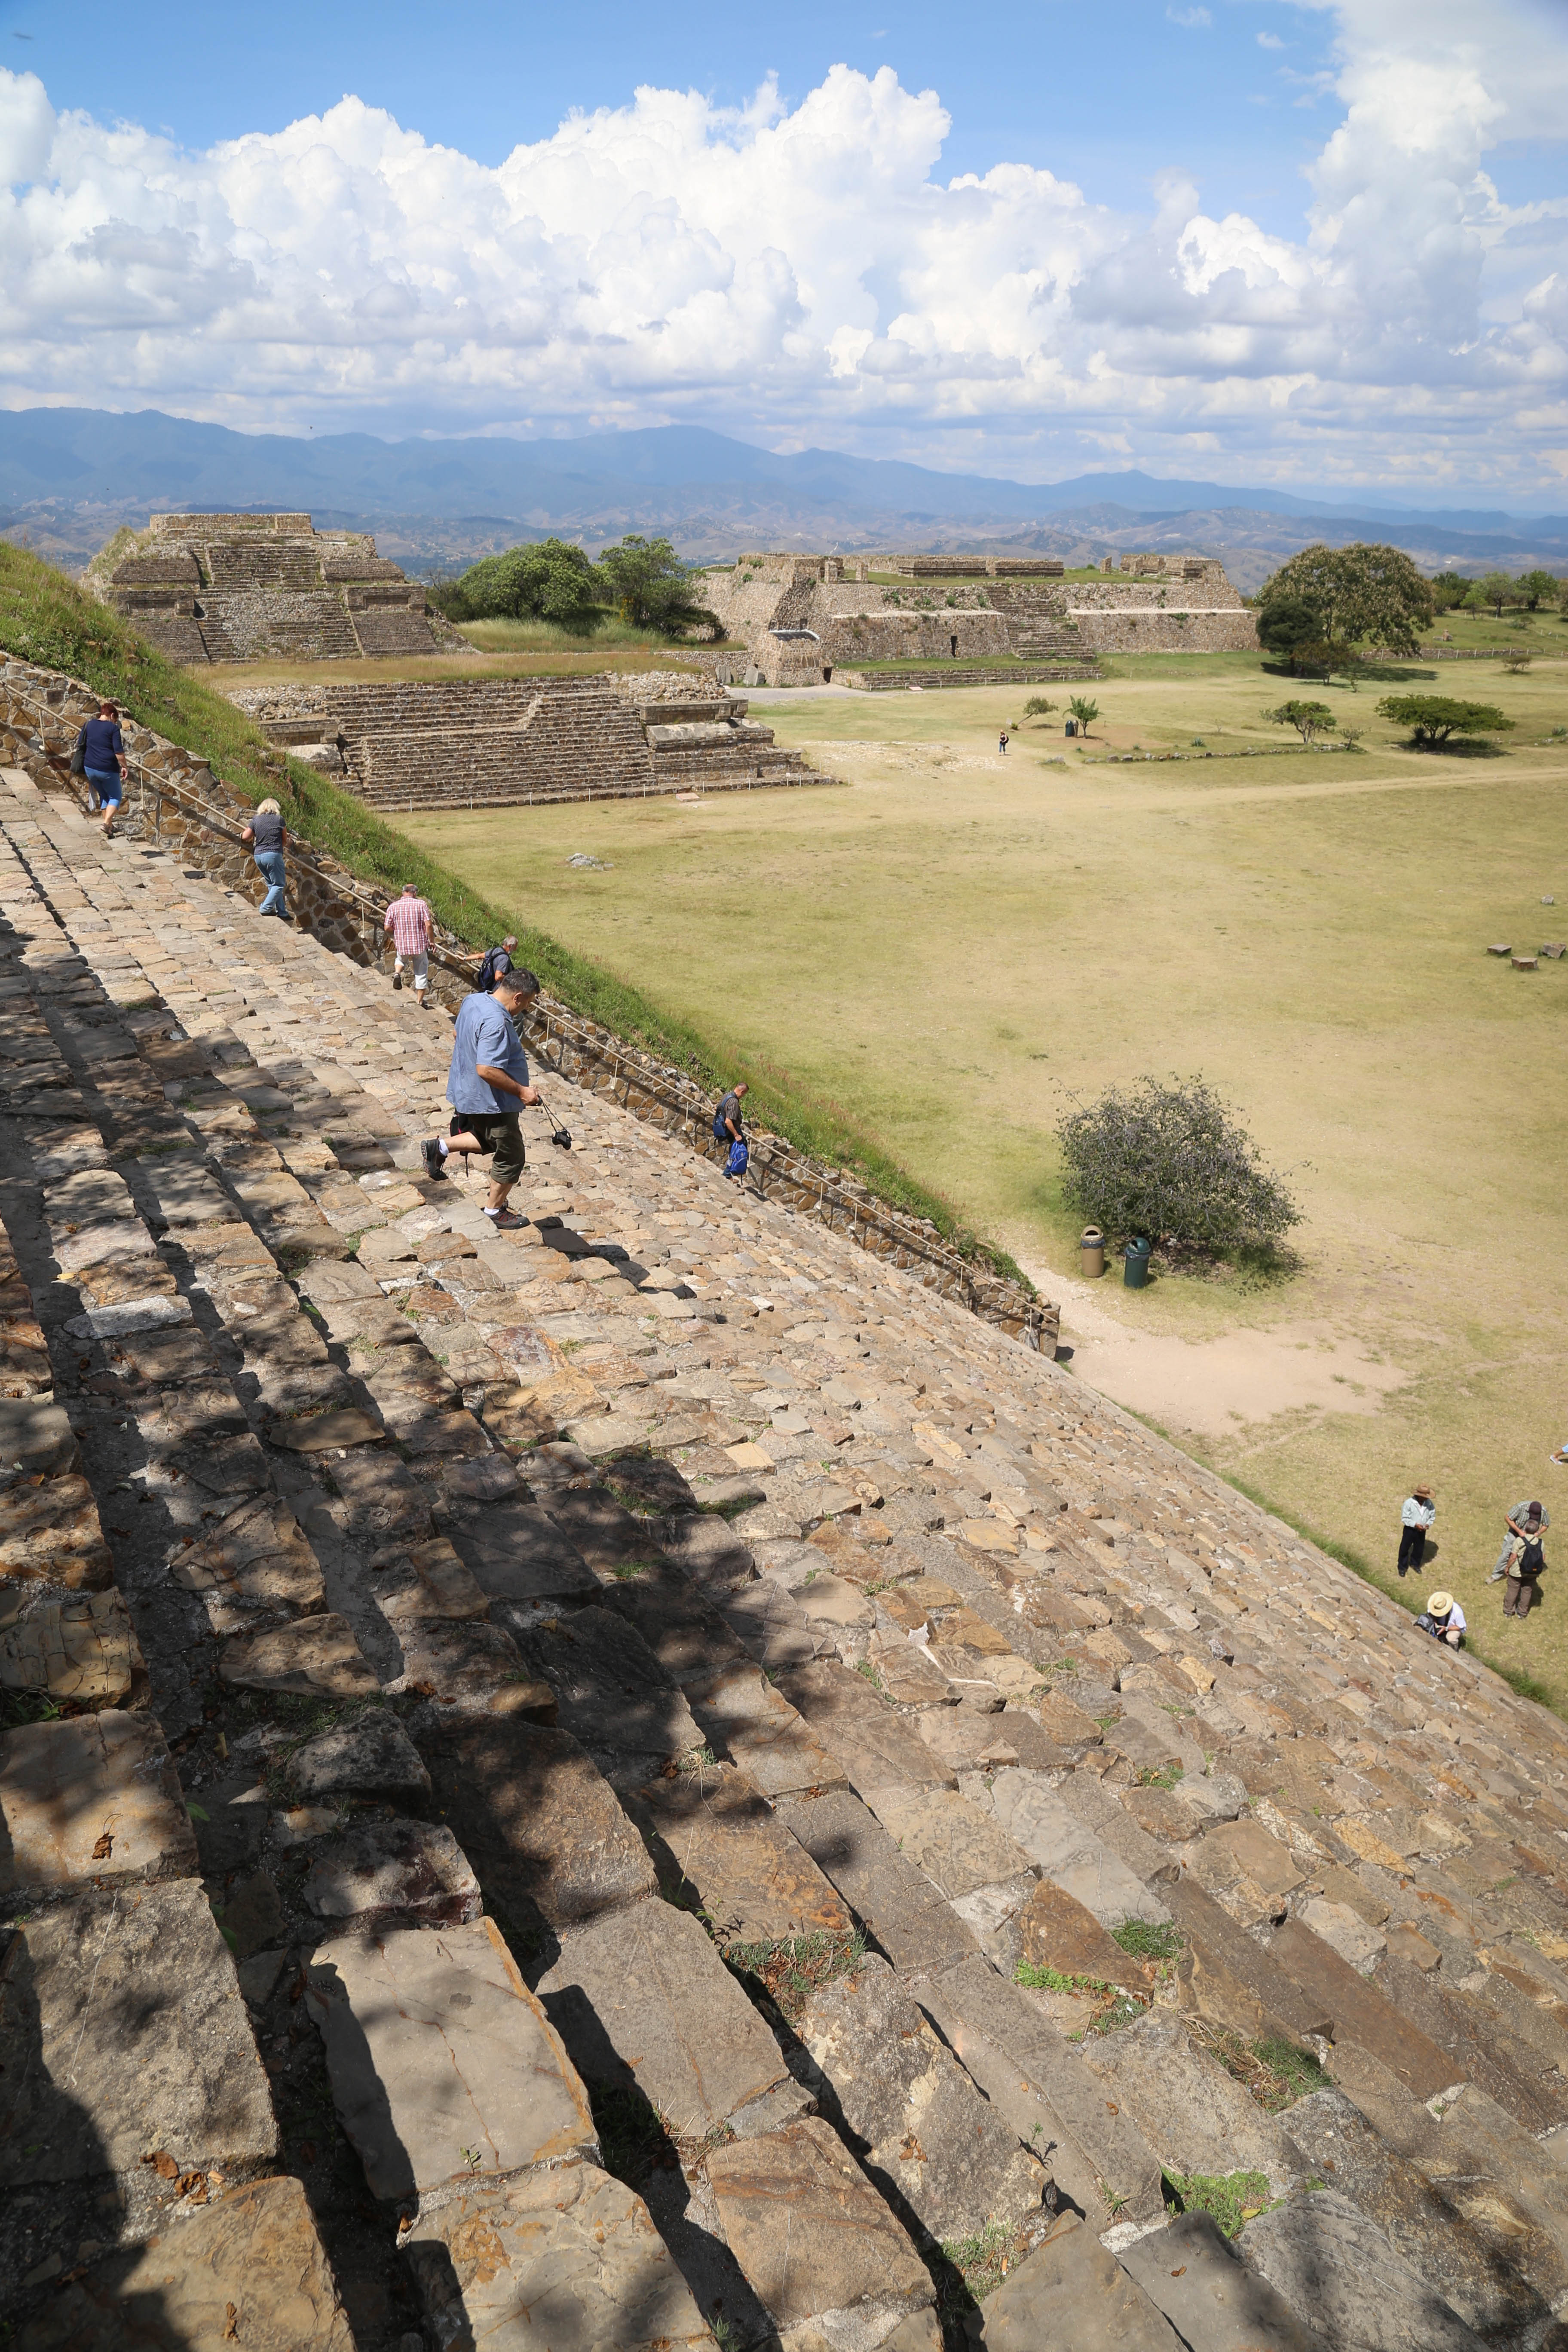 The steps at Monte Alban are steep and big. Great care must be taken going up and down.